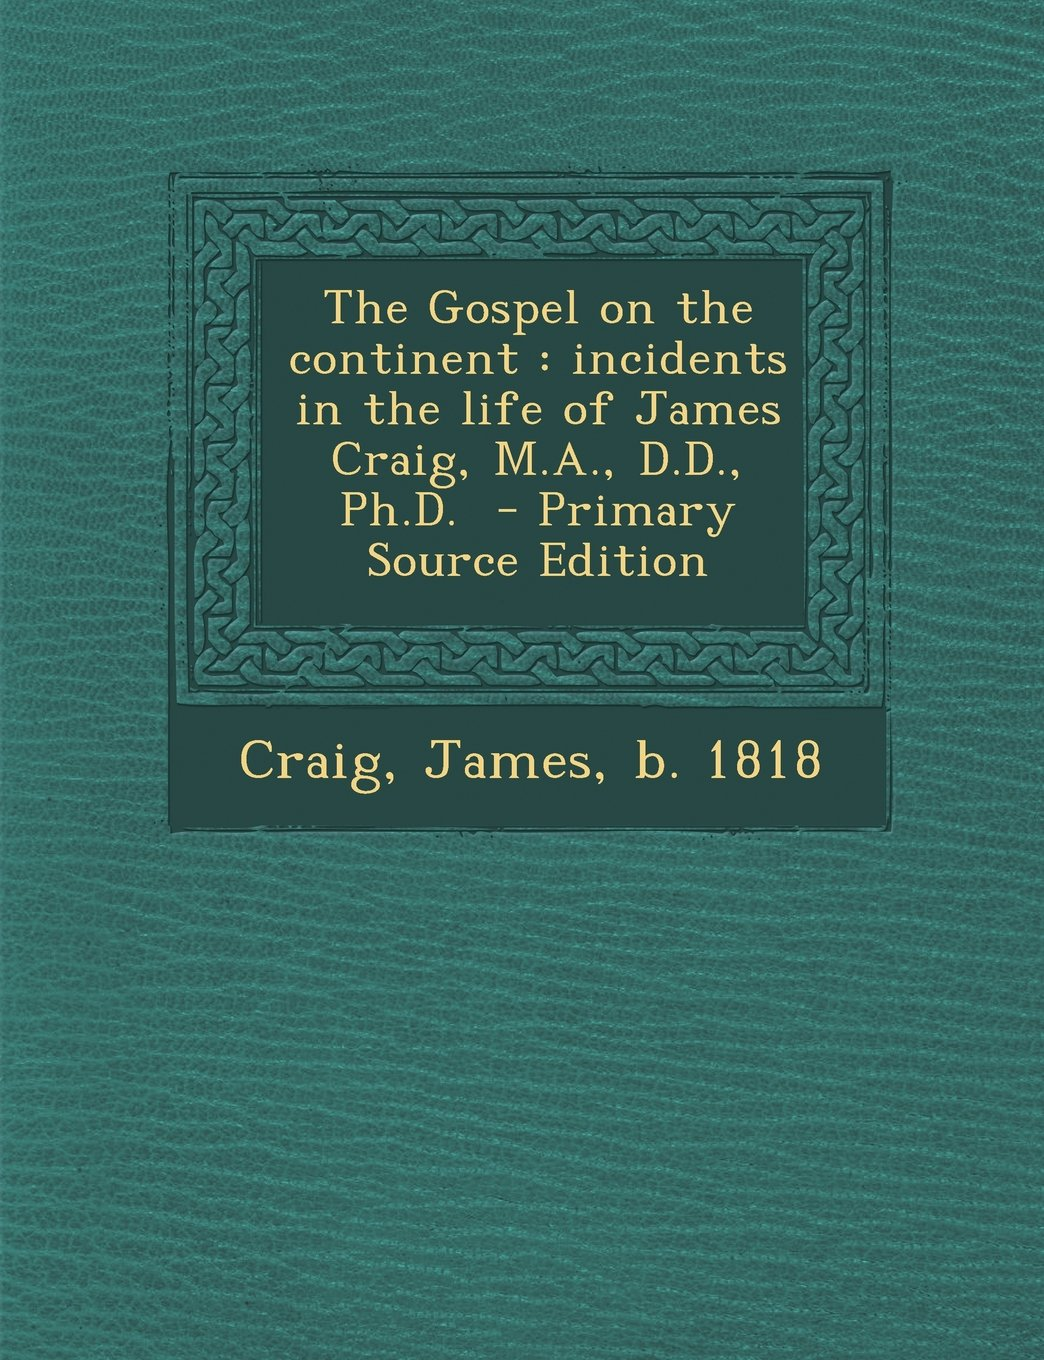 Download The Gospel on the Continent: Incidents in the Life of James Craig, M.A., D.D., PH.D. - Primary Source Edition ebook